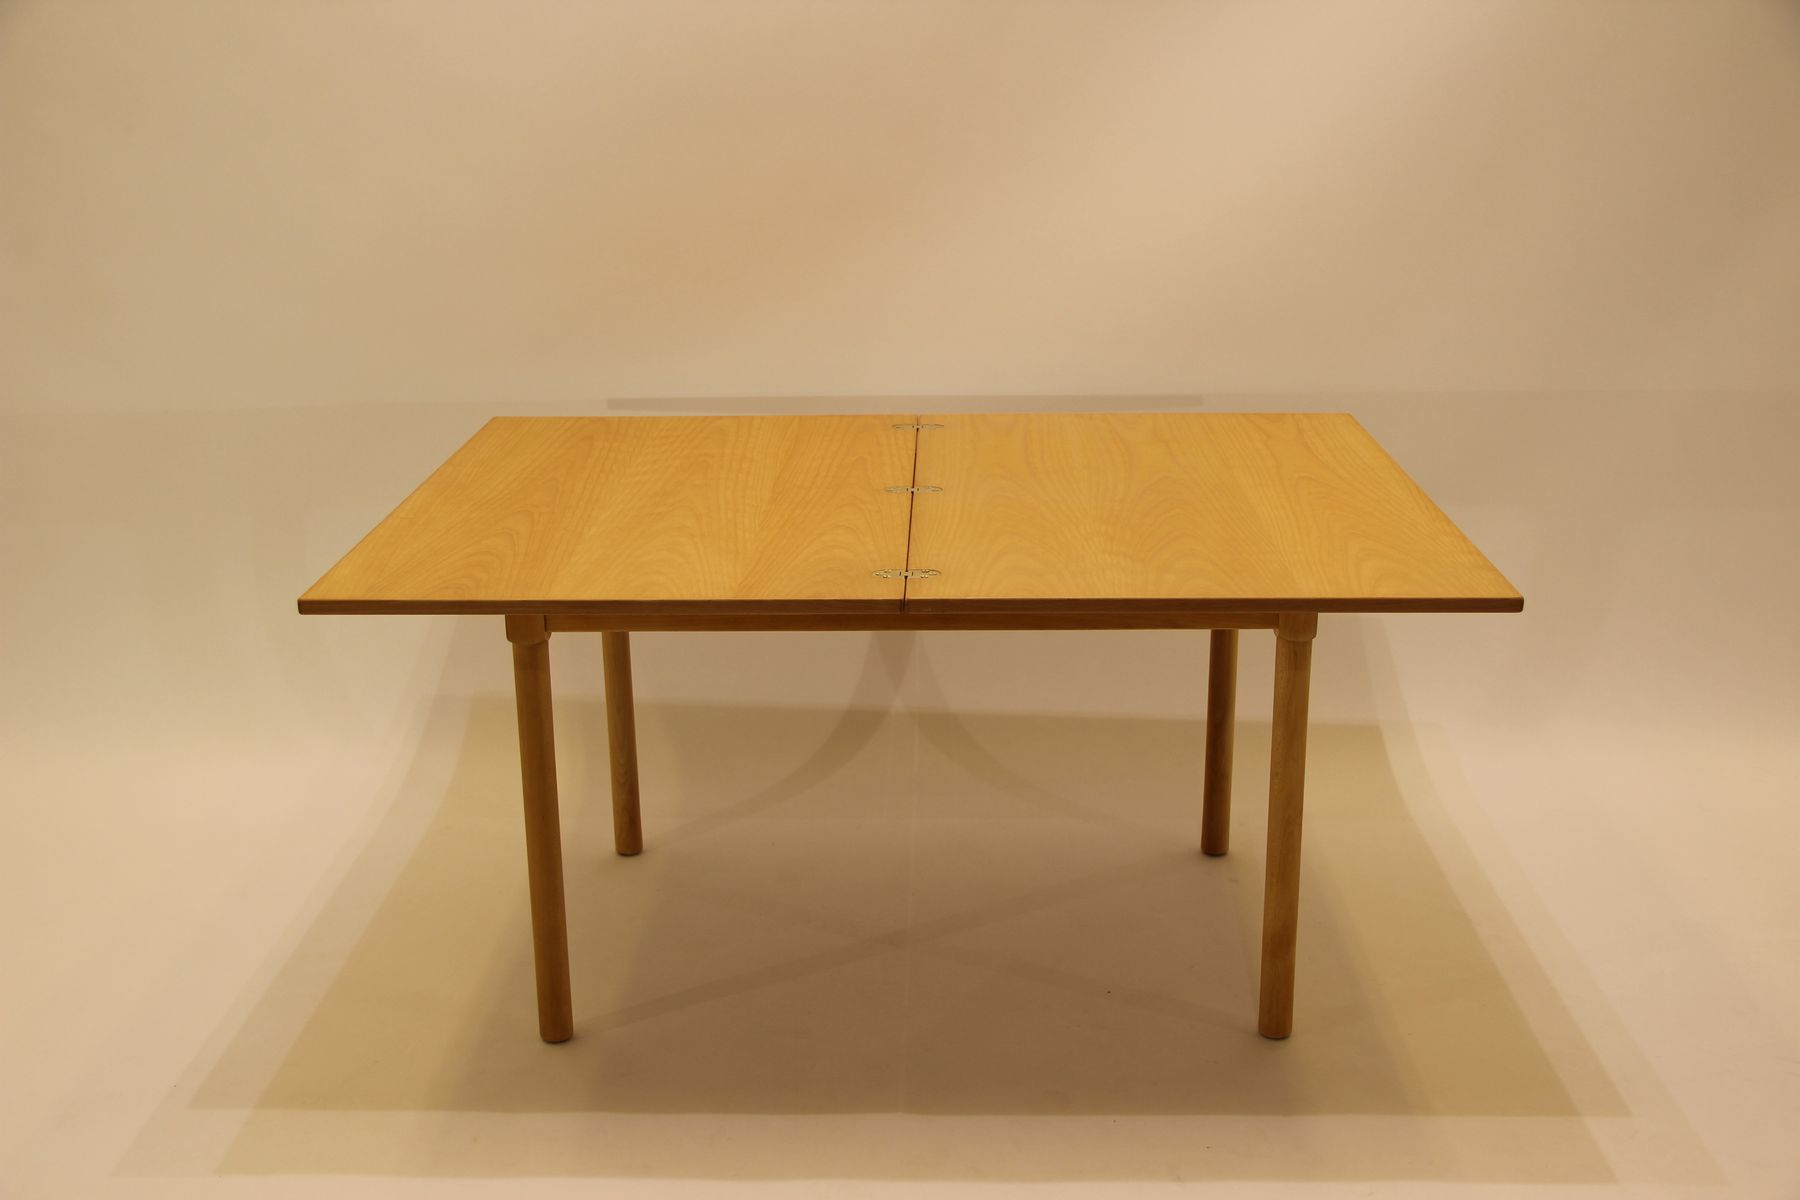 Beech Coffee Table Vintage Model 4500 Beech Coffee Table By Brge Mogensen For Fritz